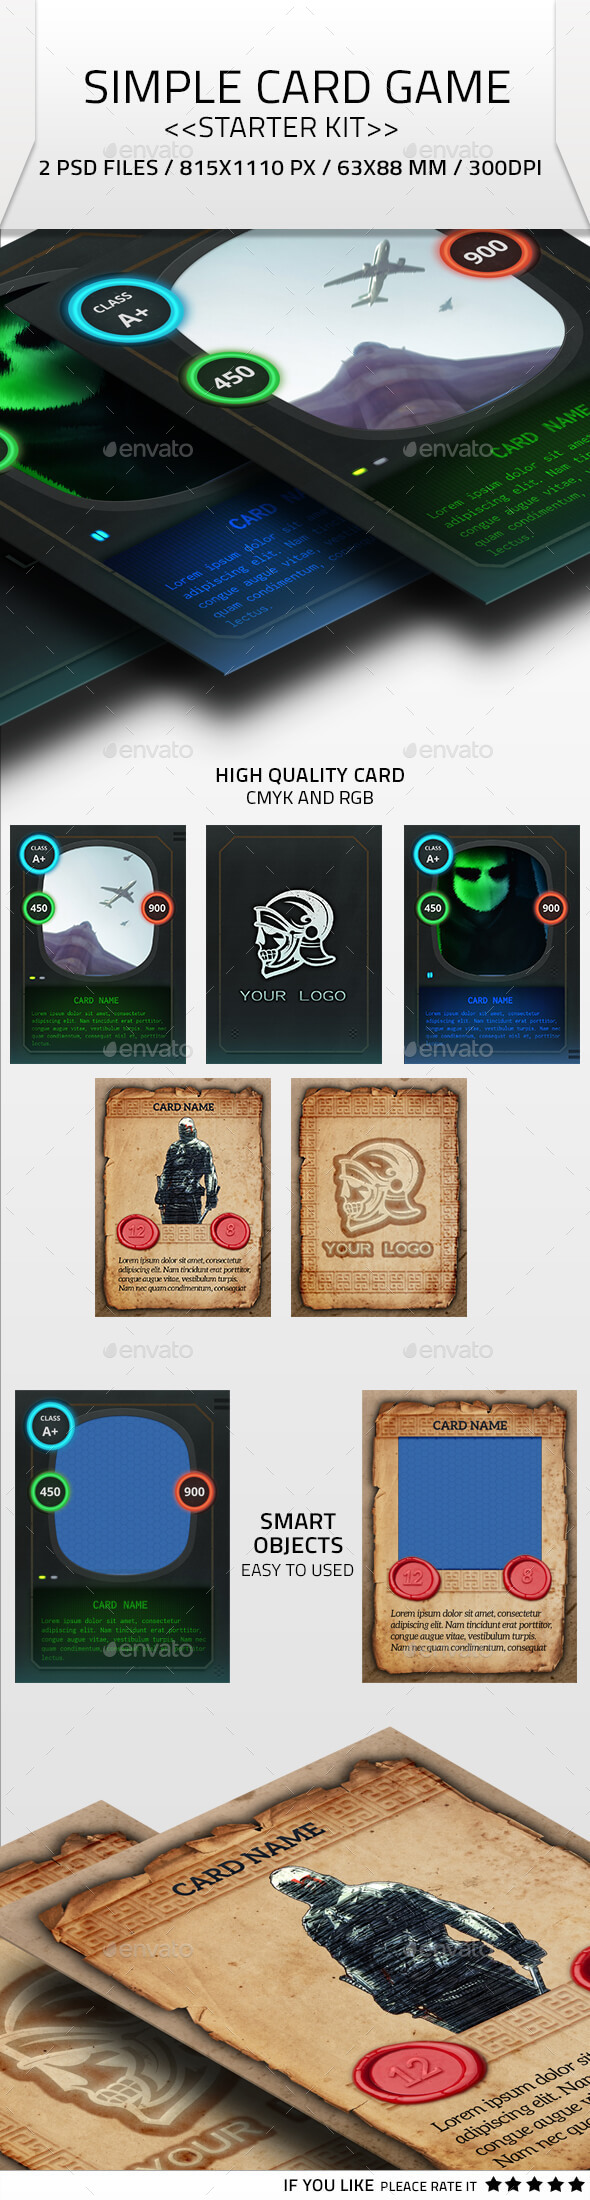 simple card game kit by ghostestudios on deviantart